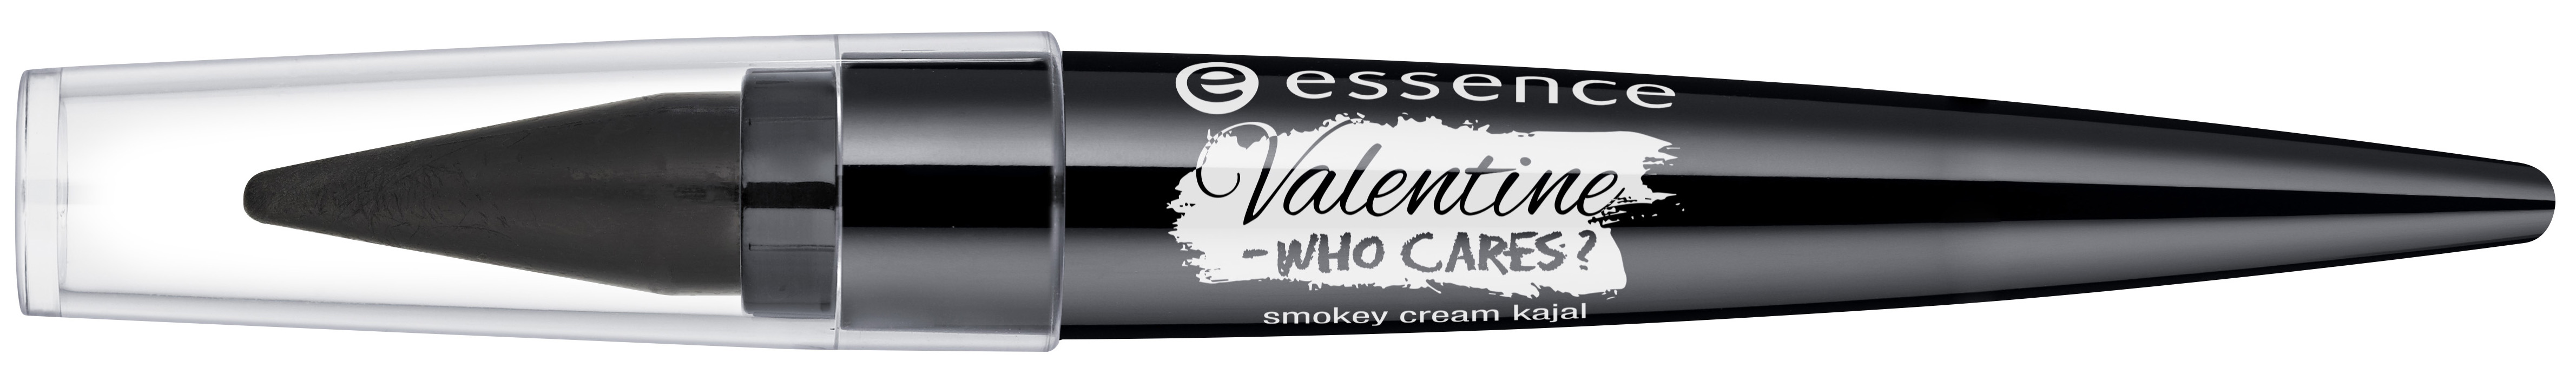 who cares smokey cream kajal